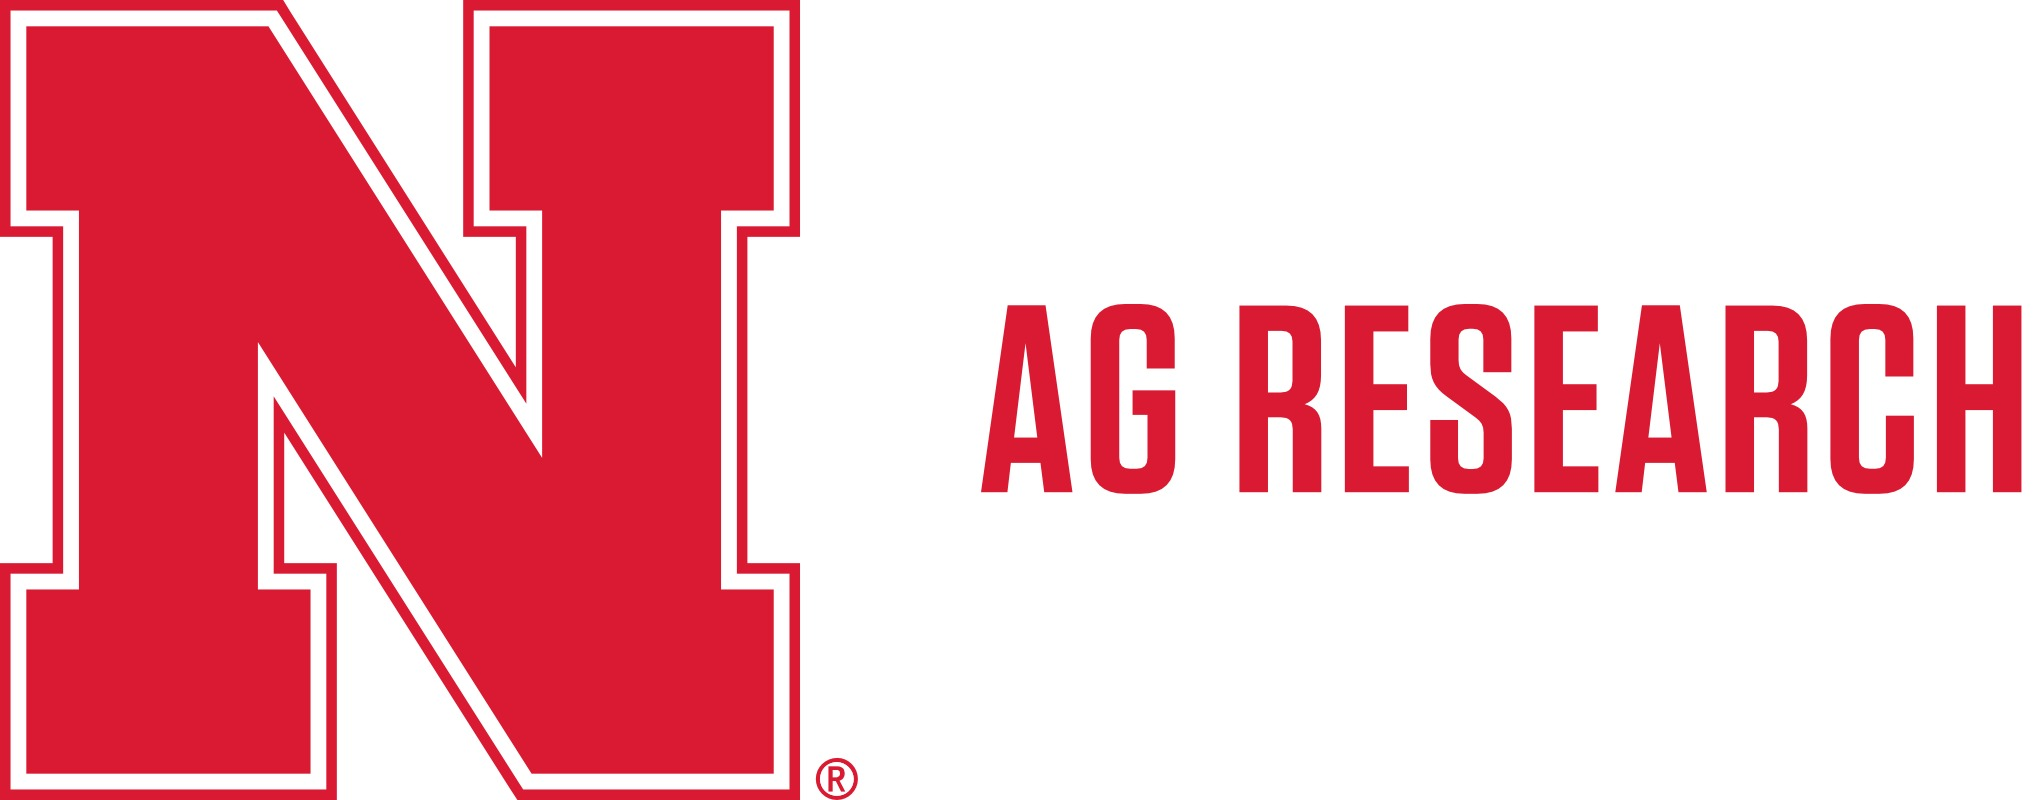 UNL Ag Research Image